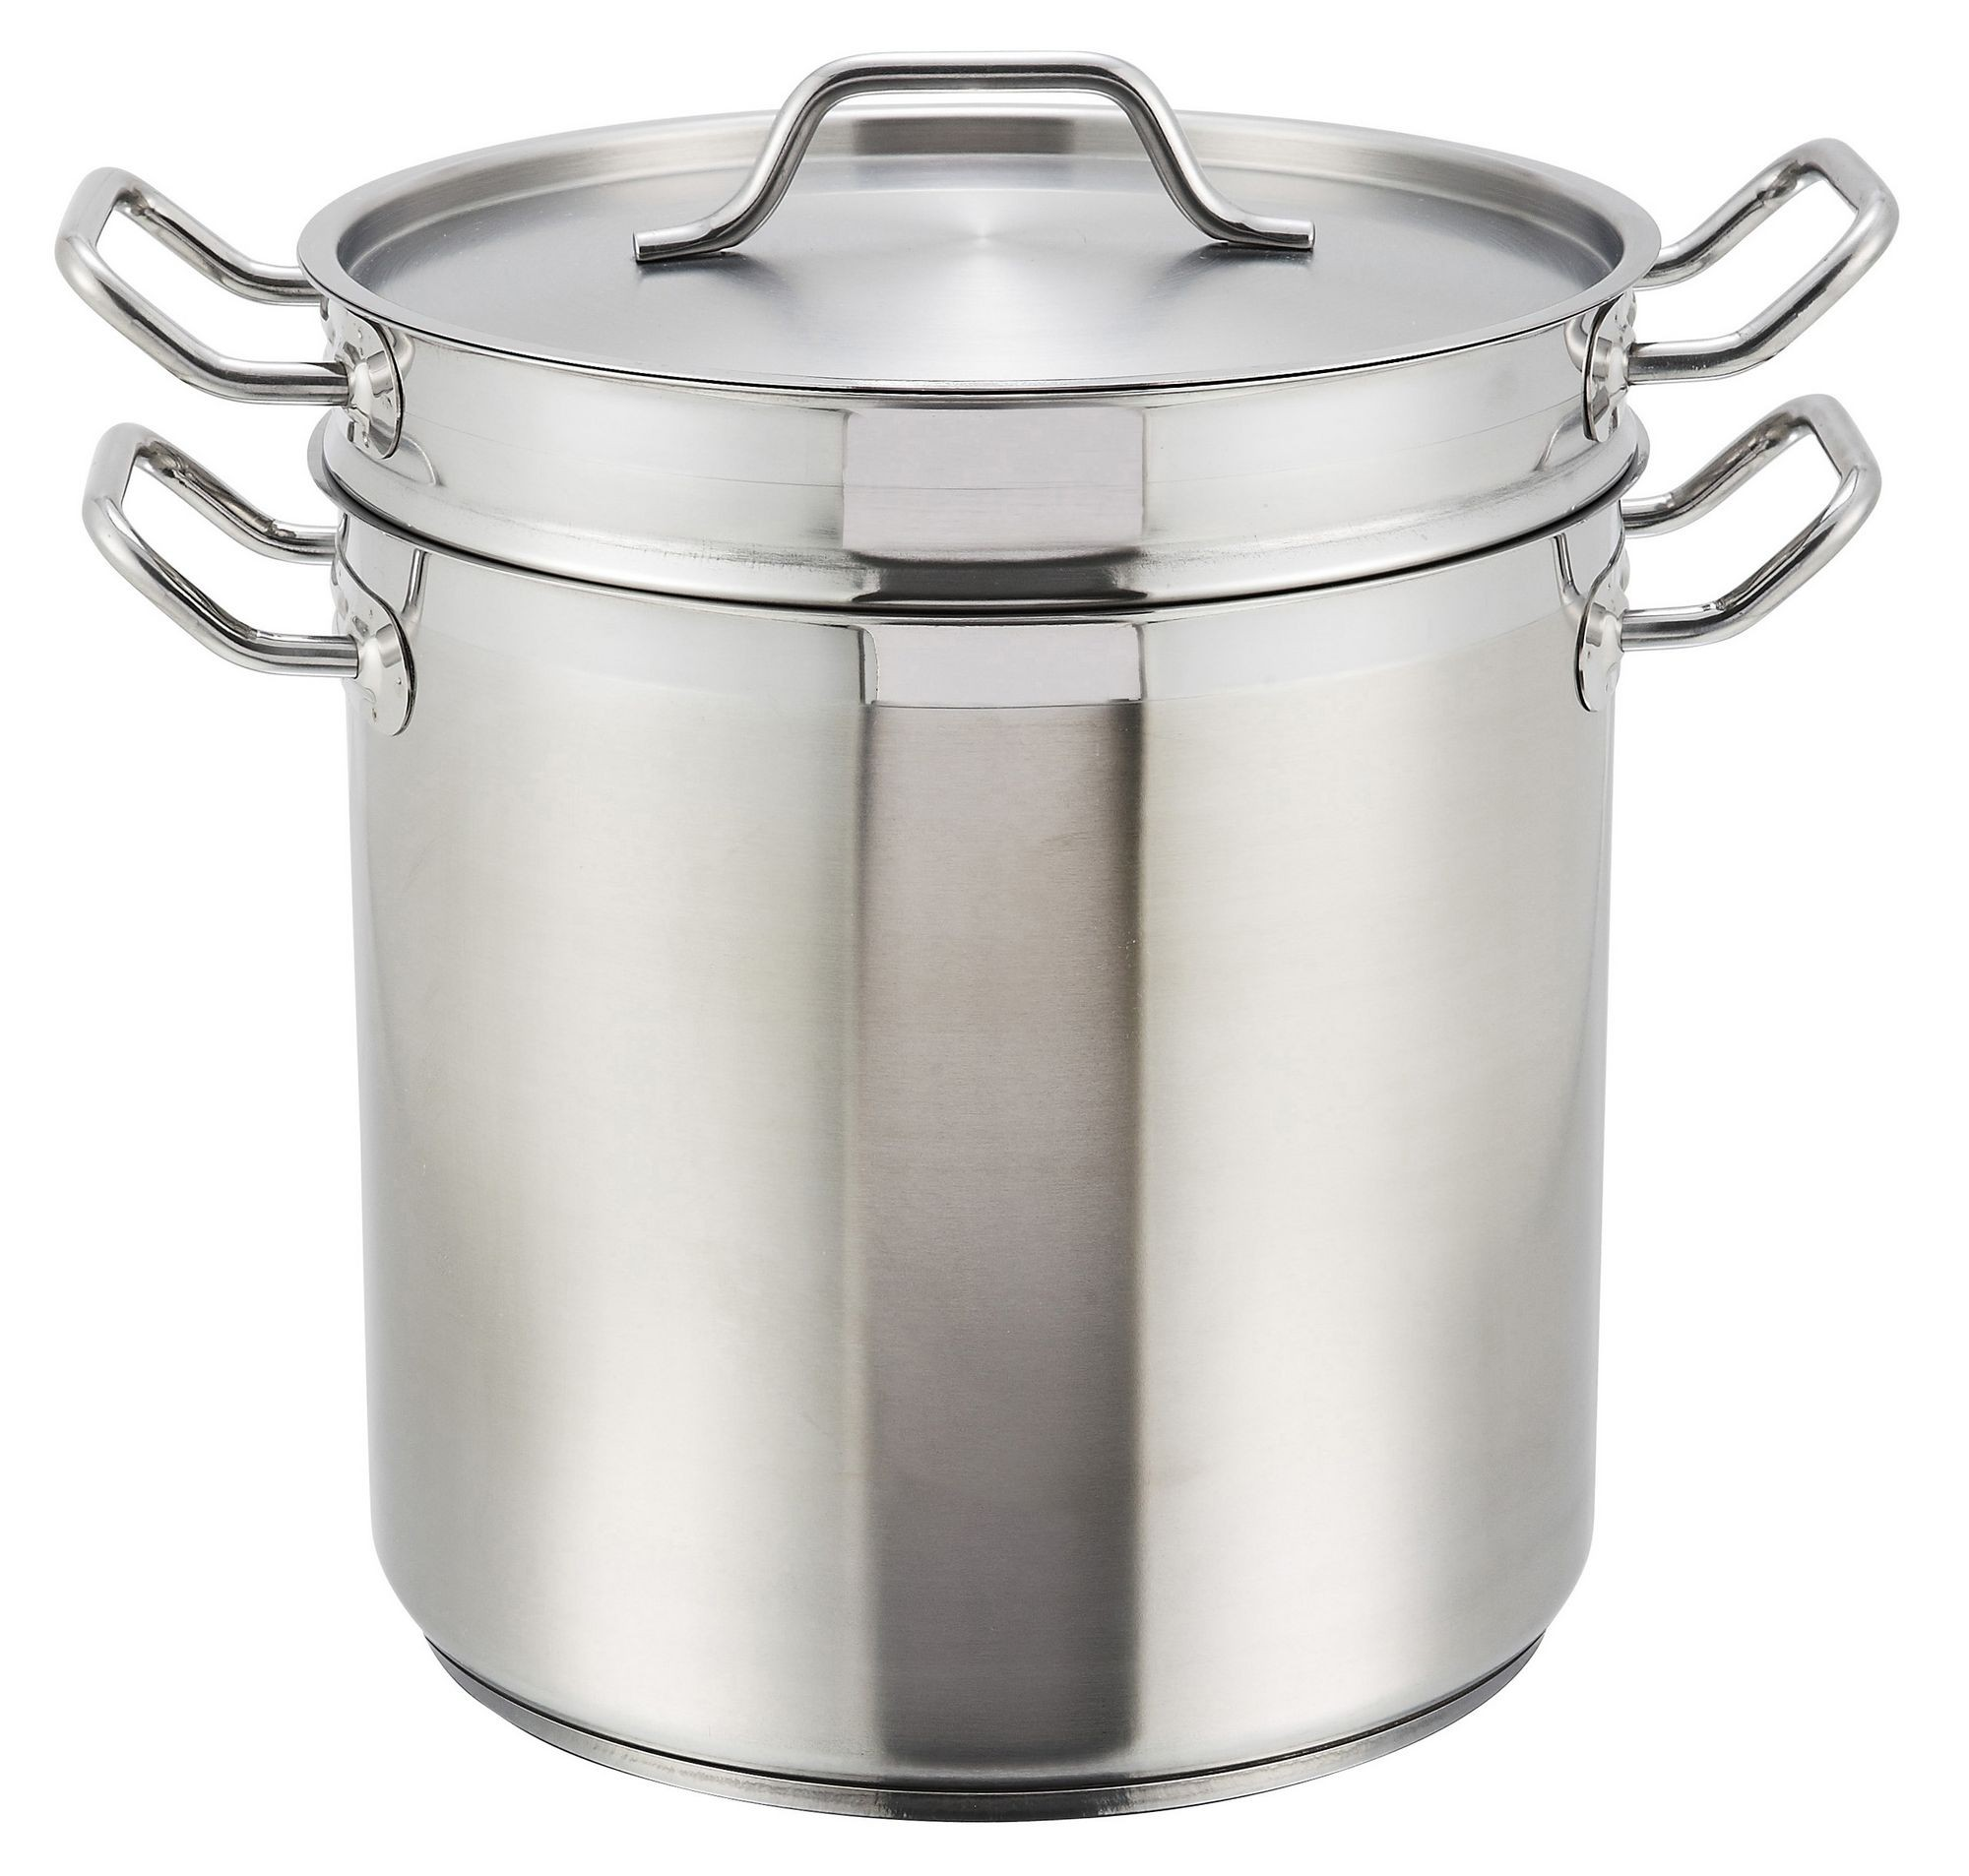 Winco SSDB-20 Stainless Steel 20 Qt. Double Boiler with Cover